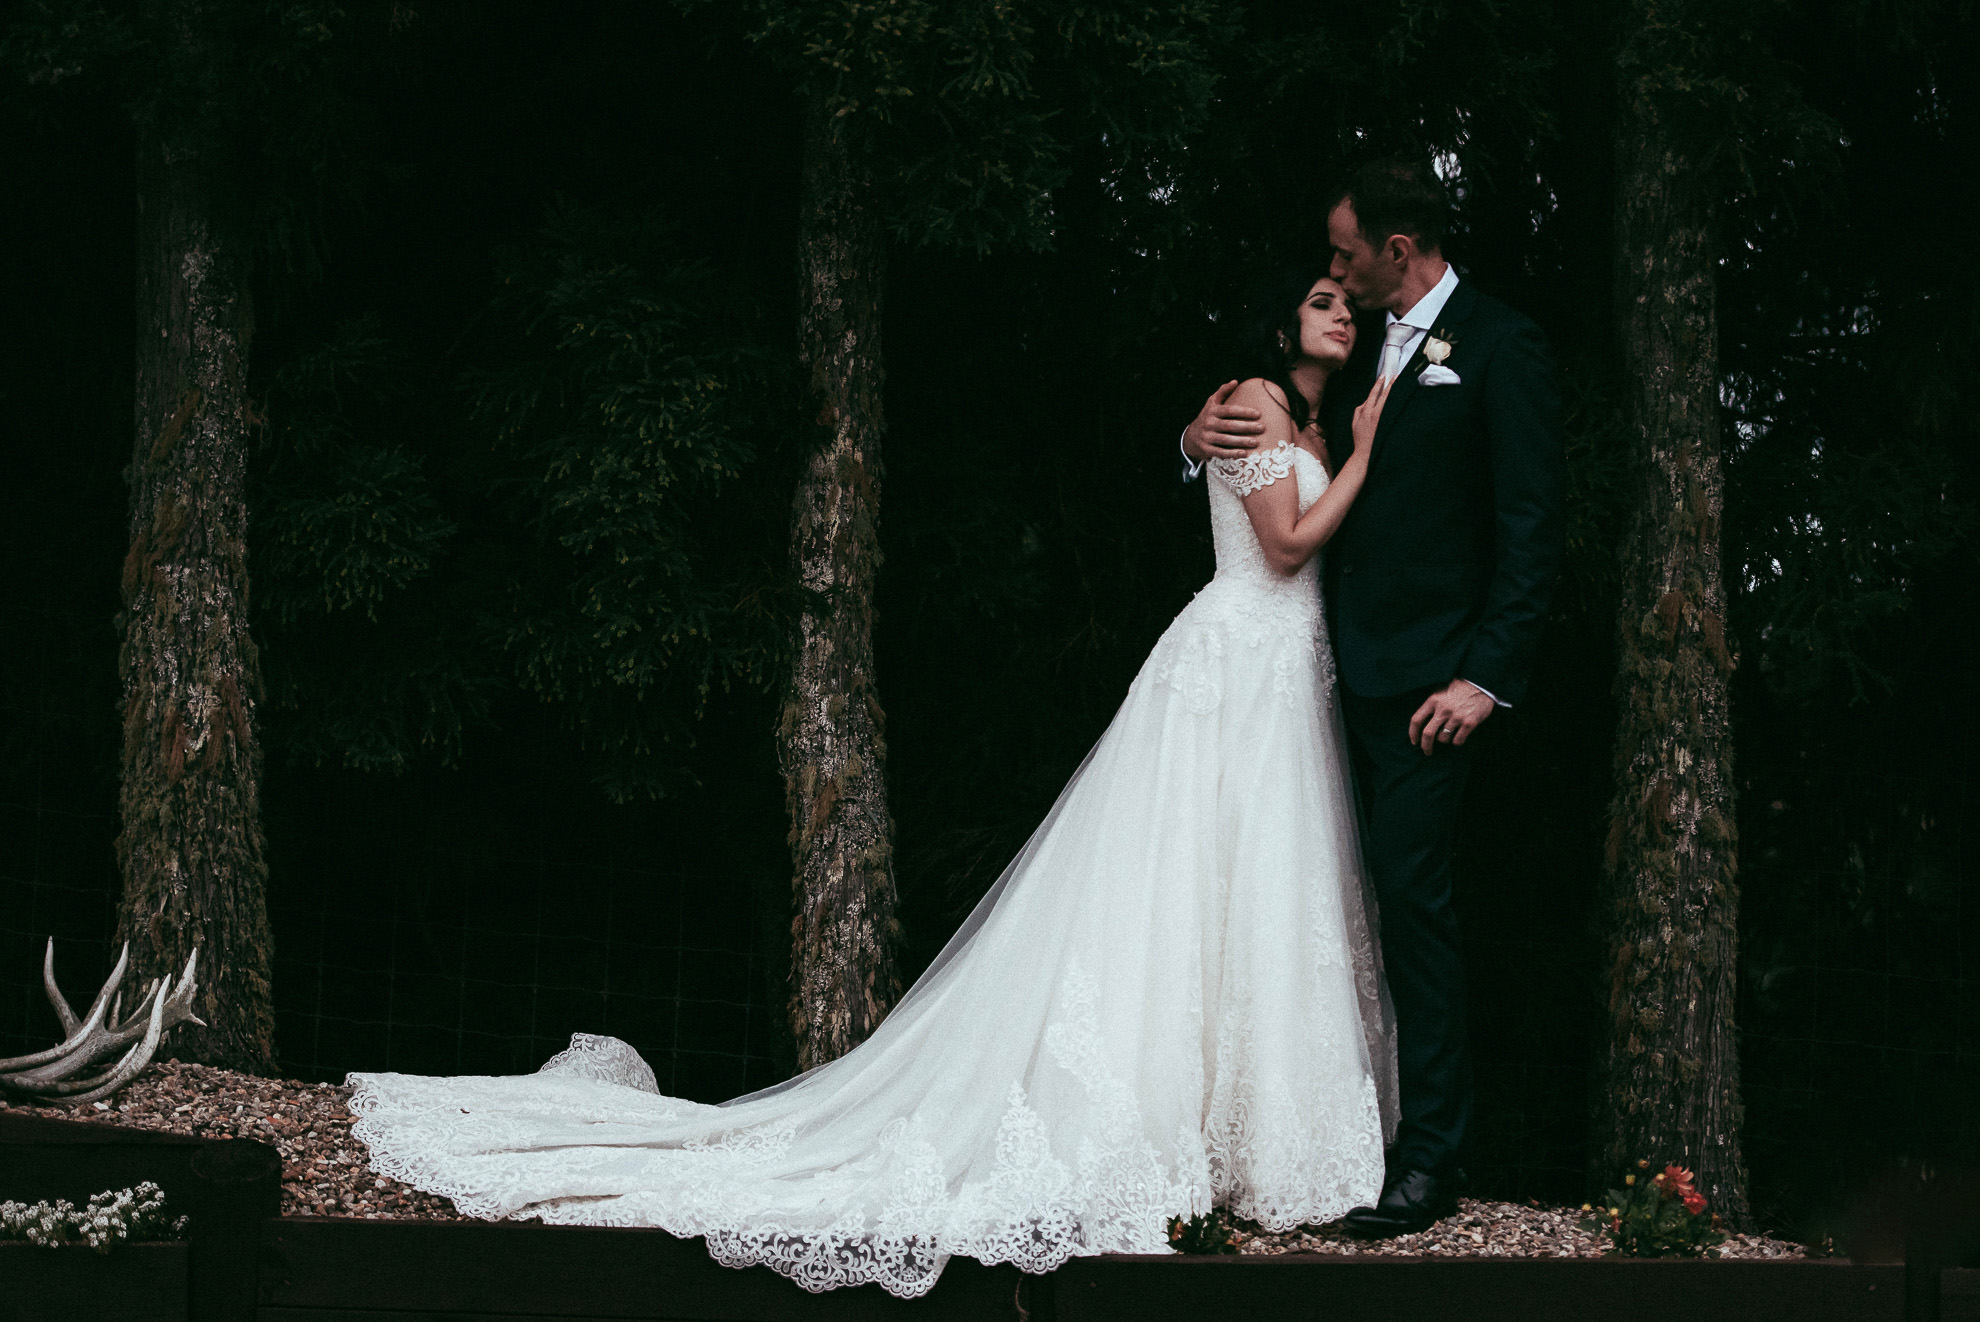 wedding-by-levien-704.JPG